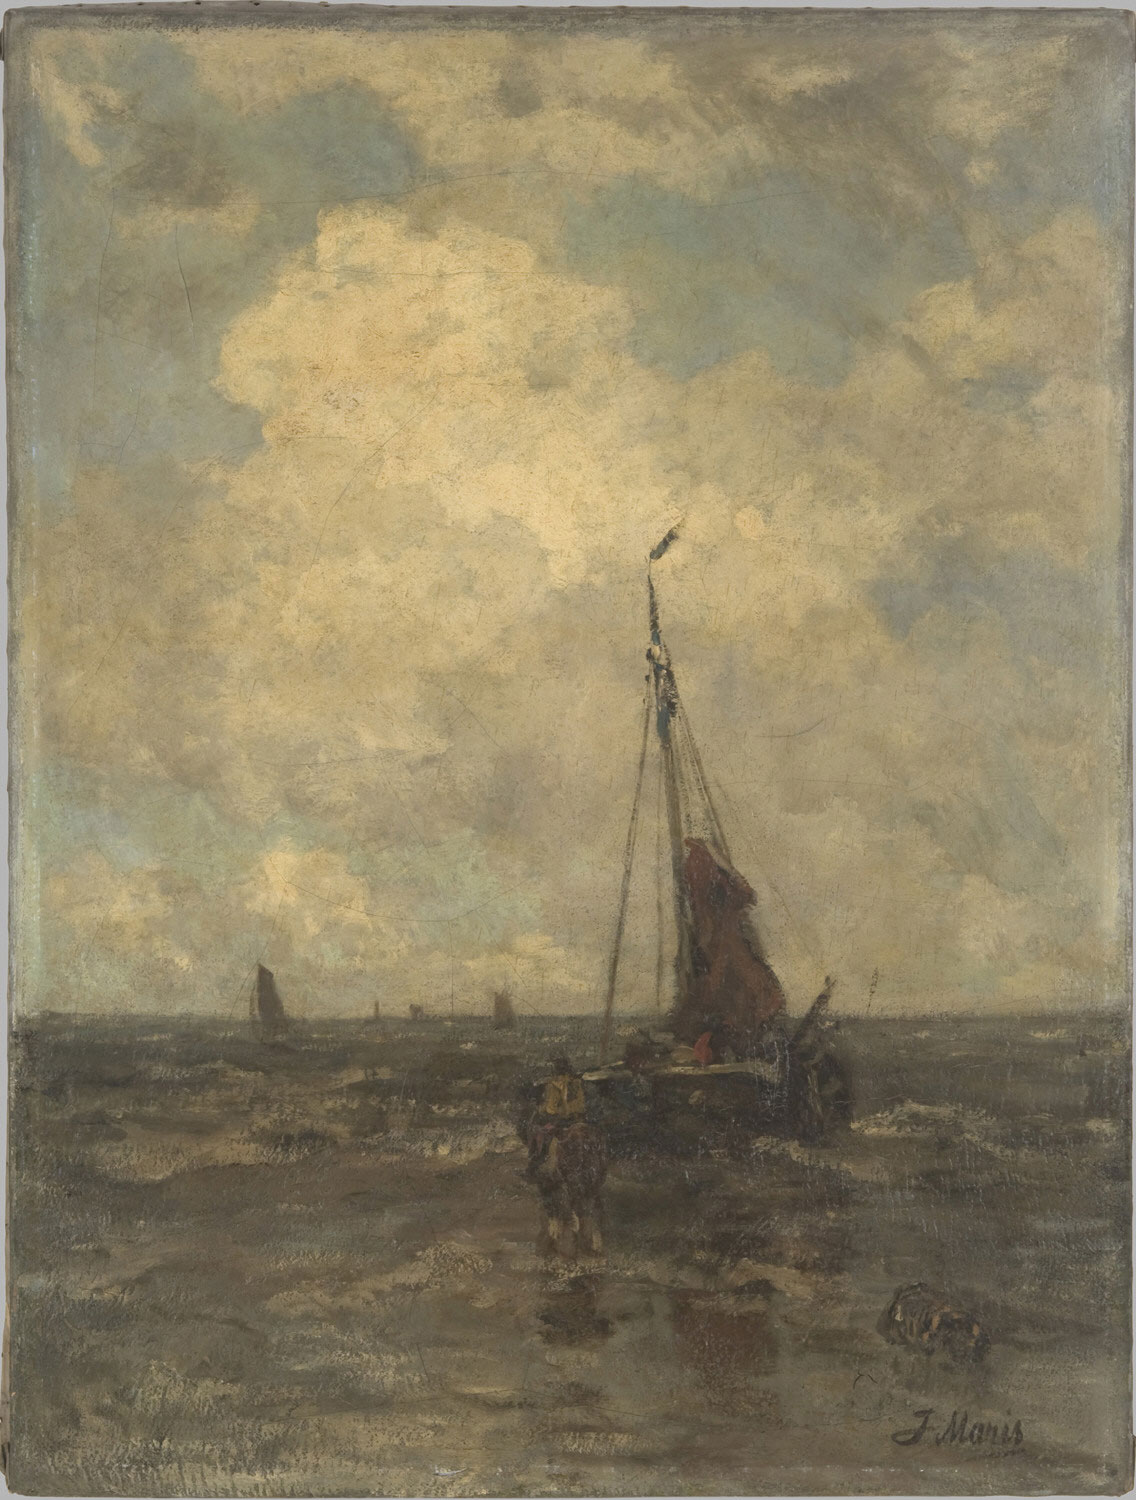 A Fishing Boat with a Horse on the Beach, Sheveningen